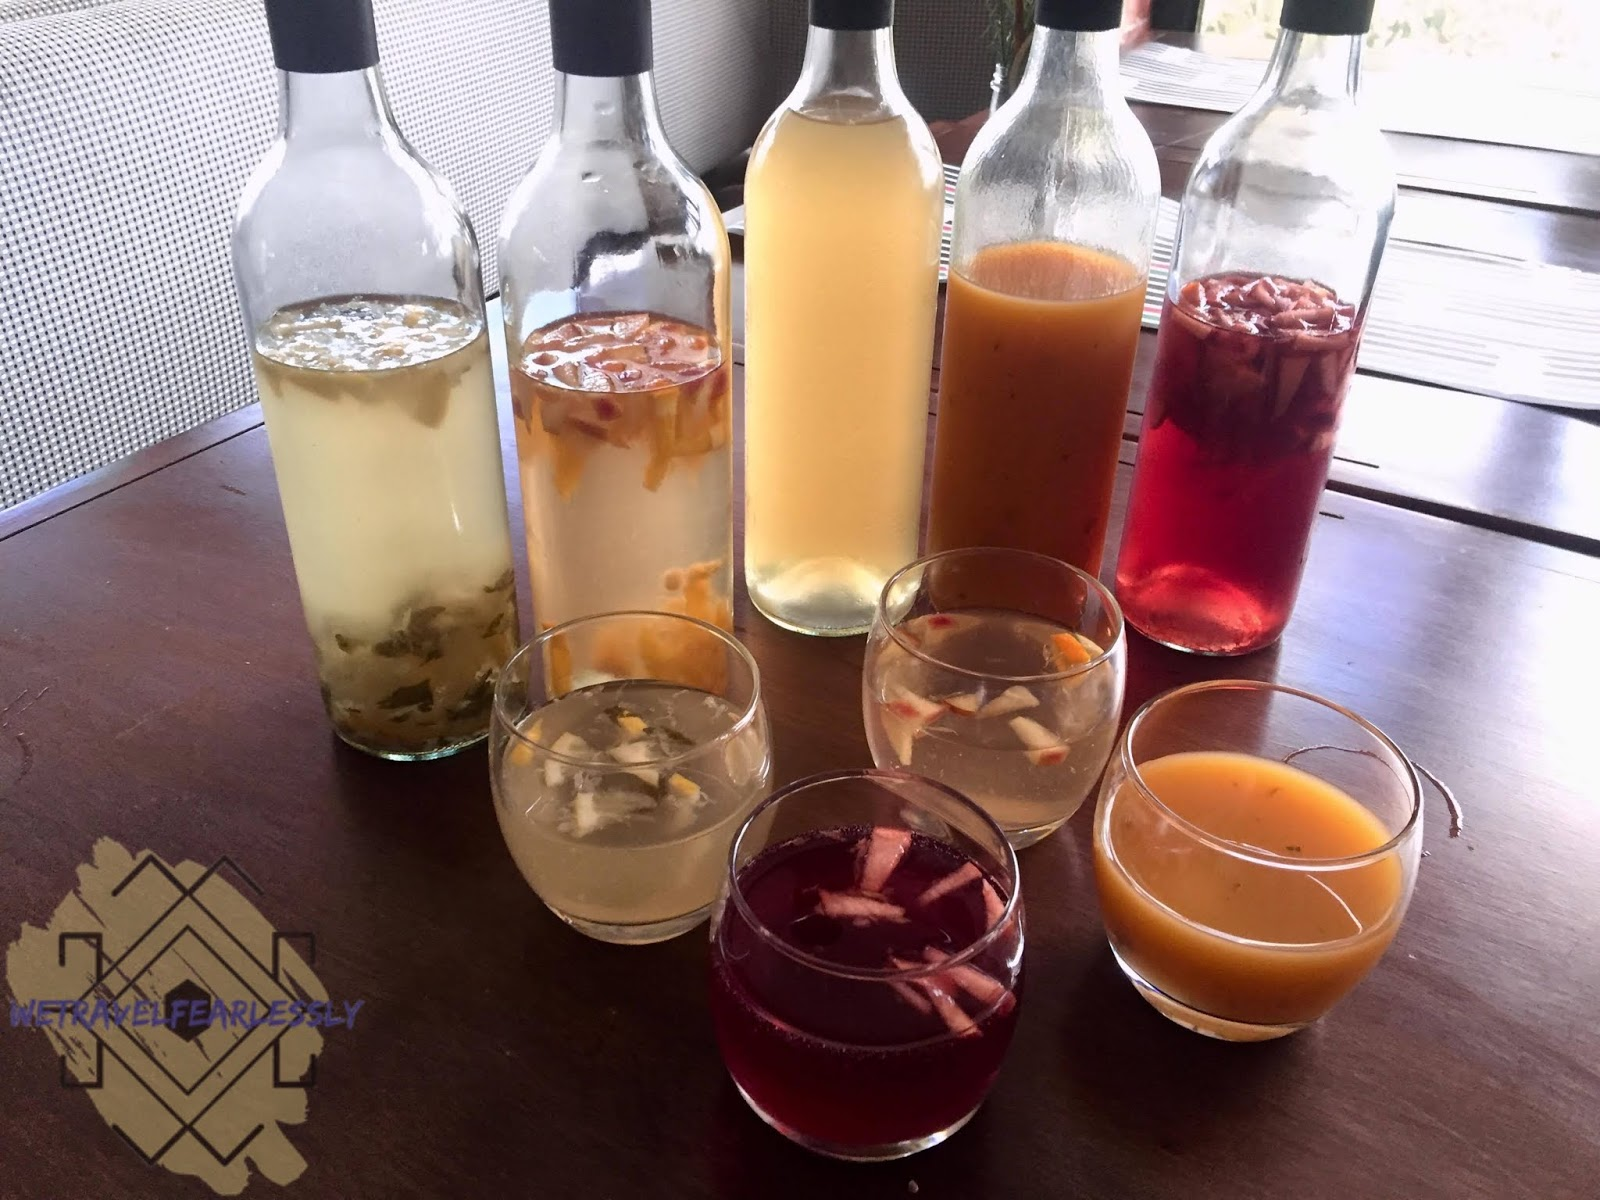 Mojito, White Sangria, Lemongrass Iced Tea, Mango, Red Sangria (PHP400) in Cucina di Francesco in Libis, Quezon City - WTF Review